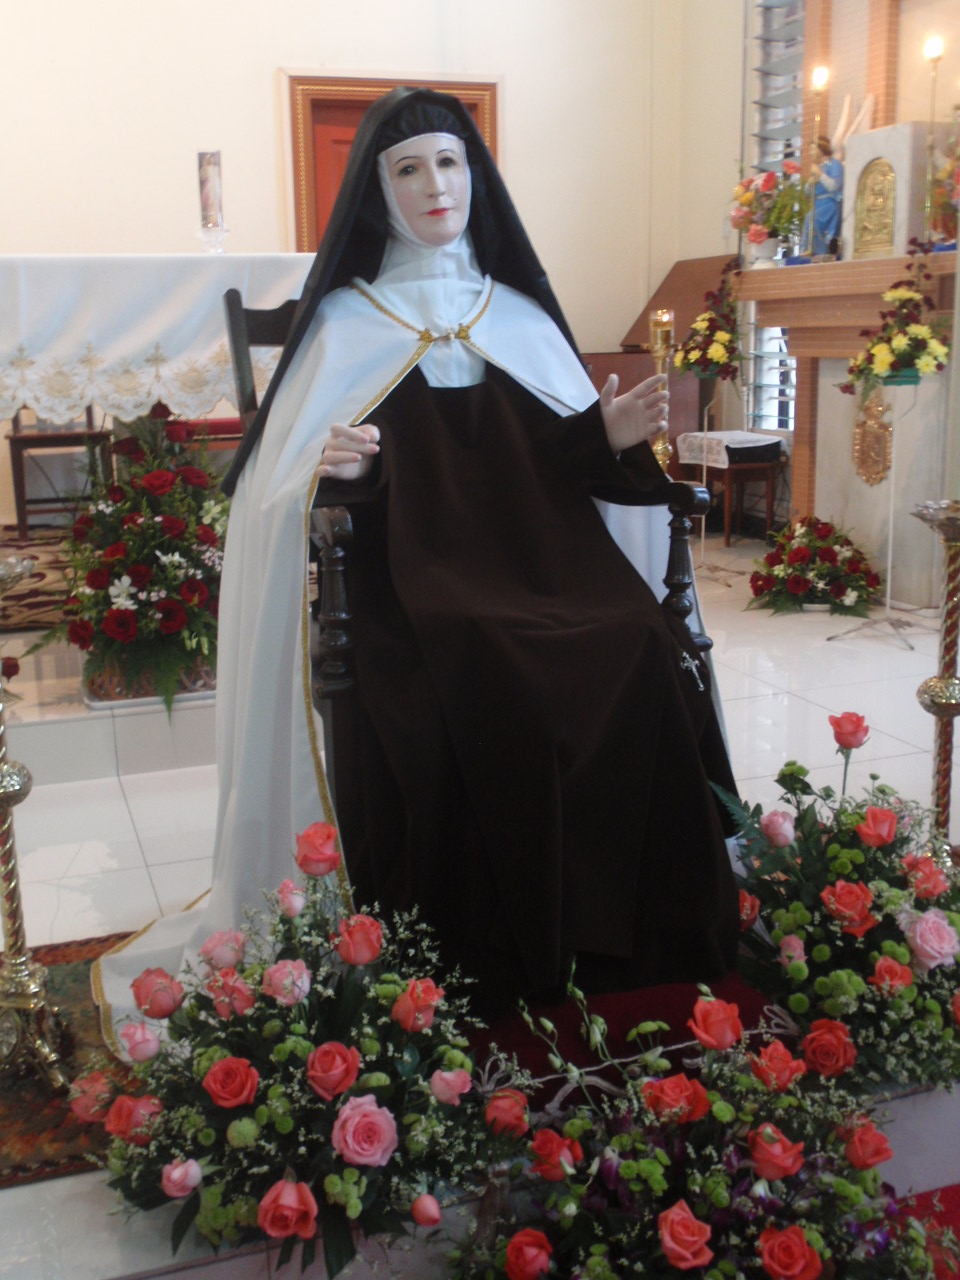 A seated Teresa of Avila depicting her teaching authority on contemplative prayer.